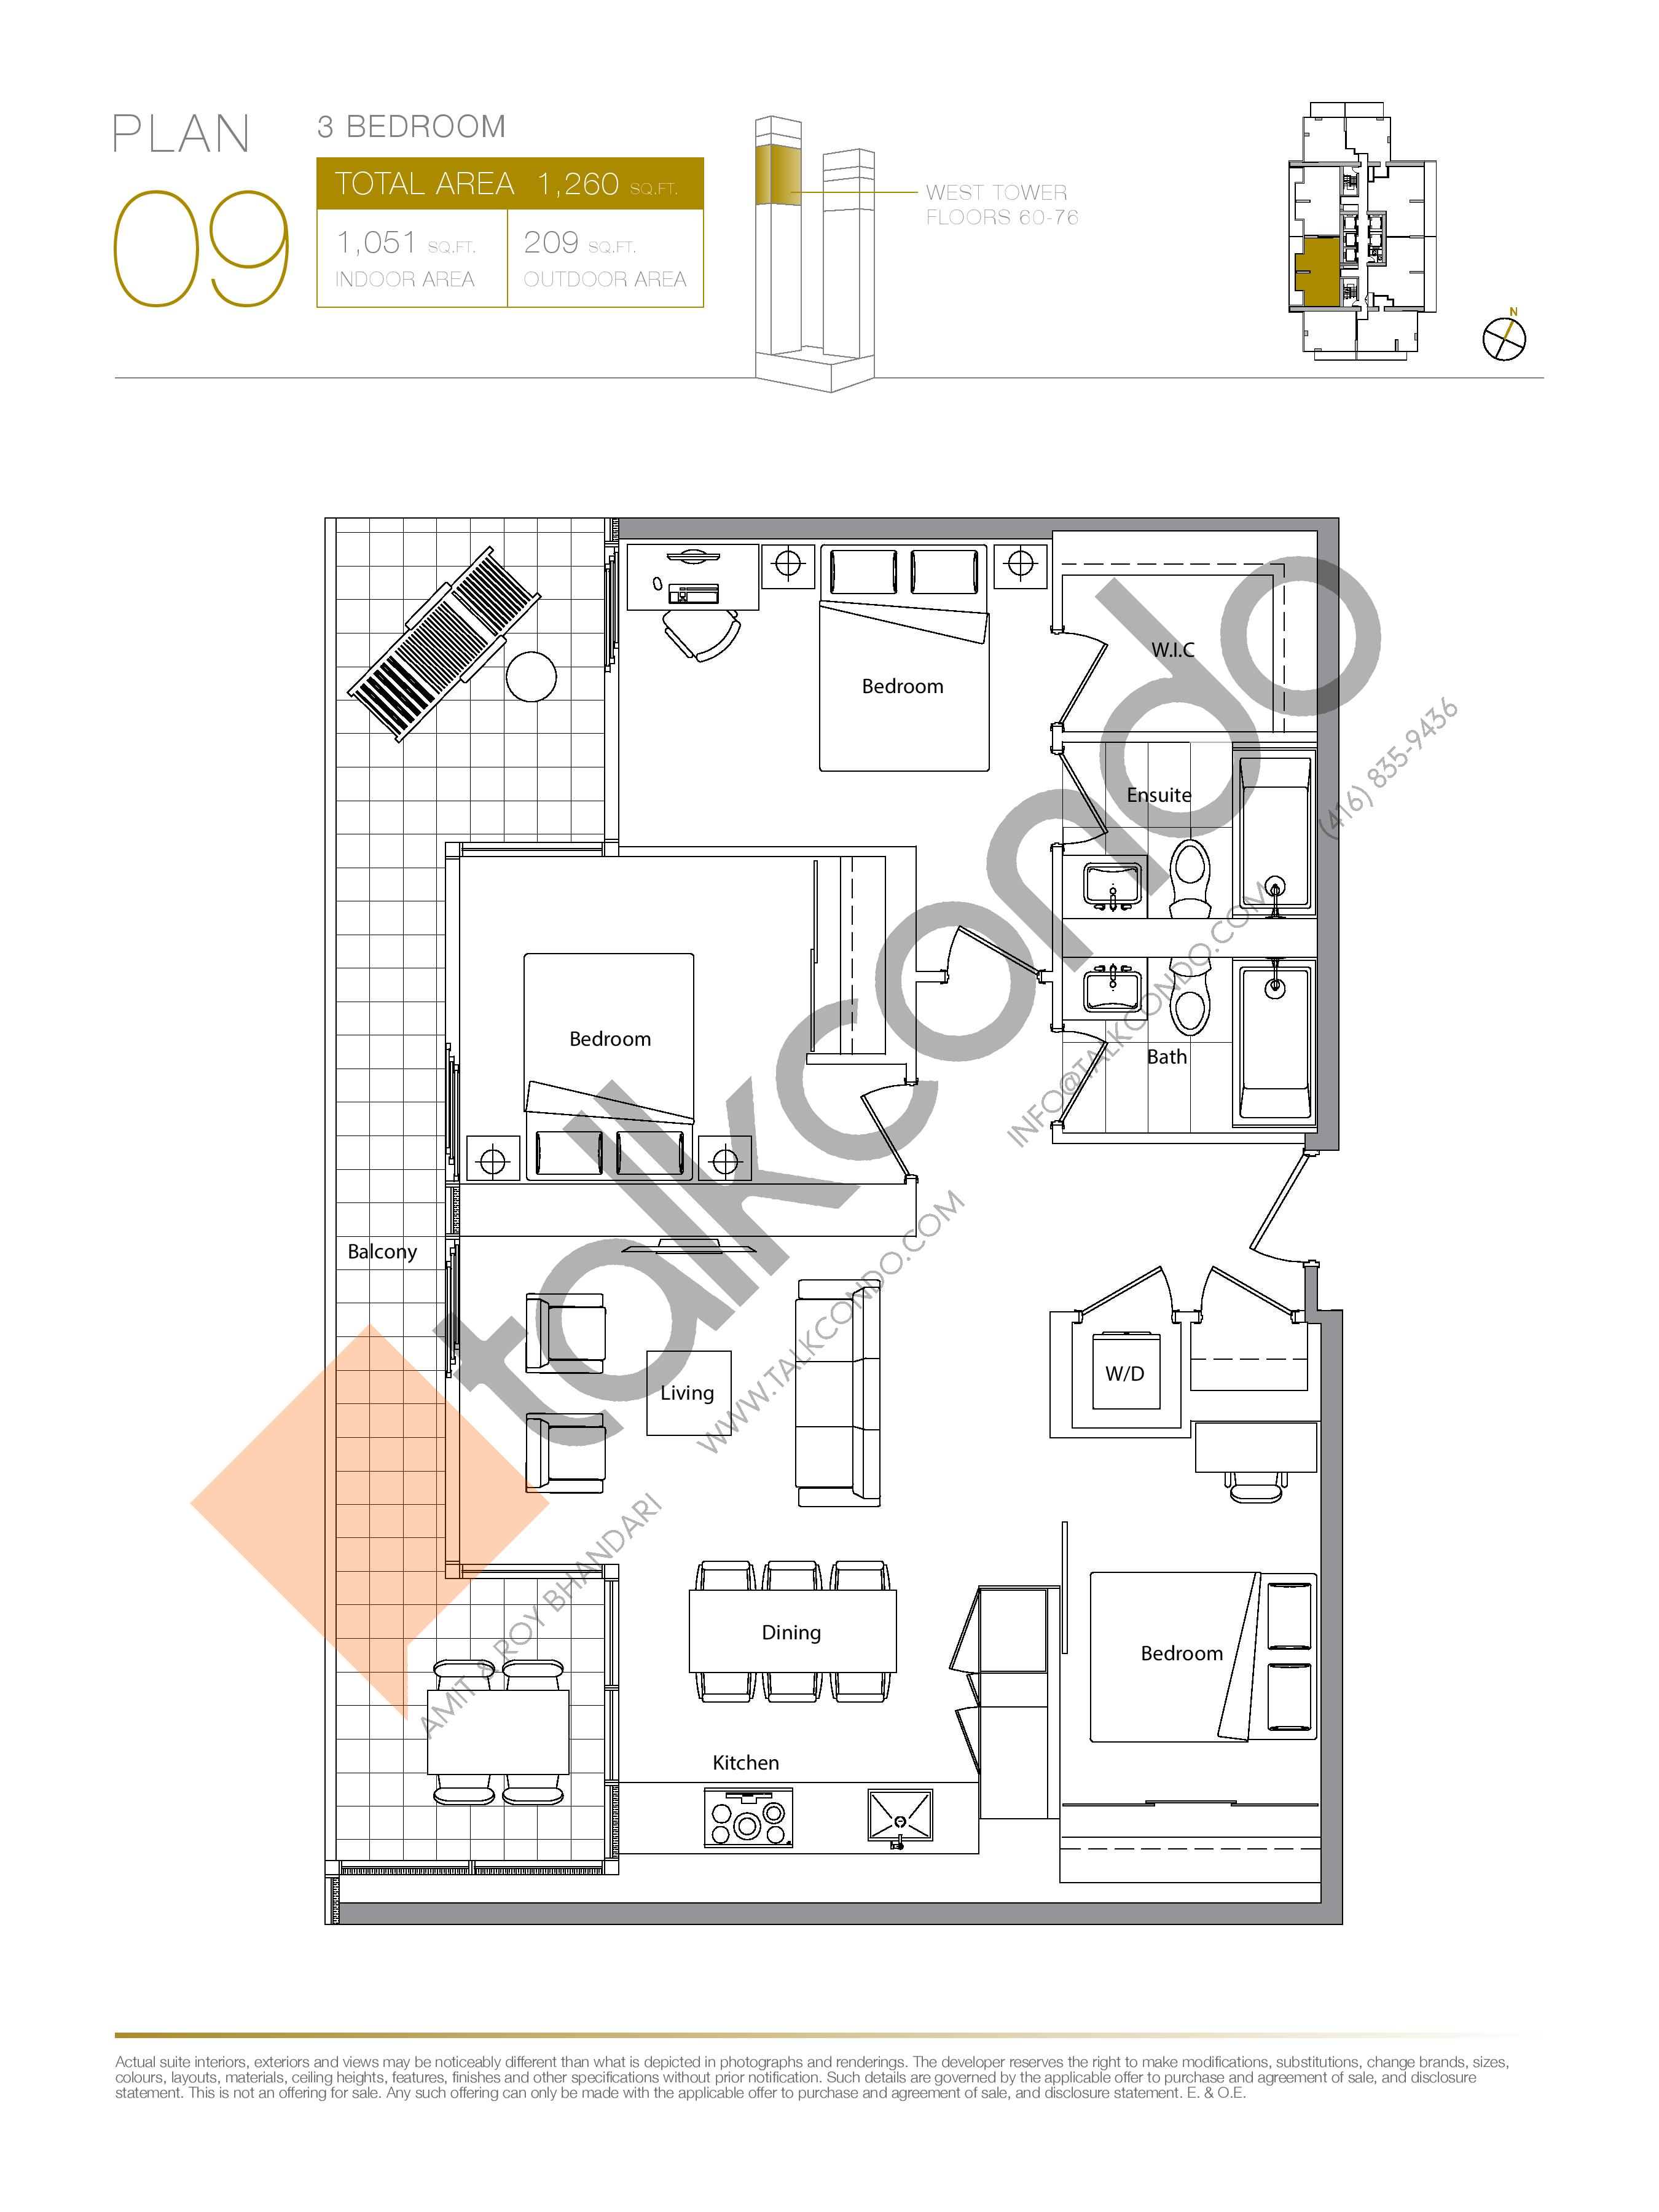 Plan 09 (New Release) Upper Floor Plan at Concord Canada House Condos - 1051 sq.ft